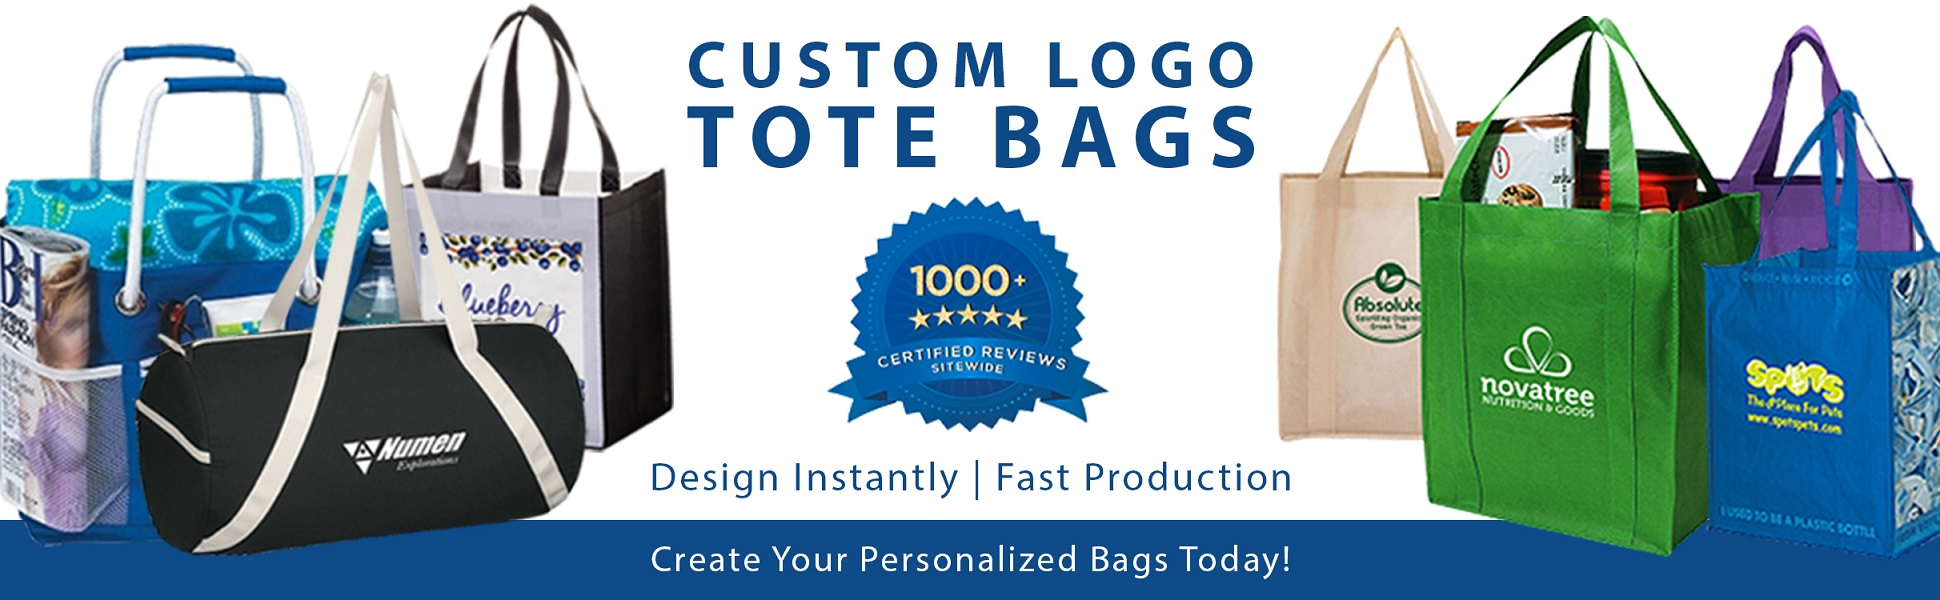 5ab8baa3f4 We offer a wide selection of cotton, canvas, polyester, non-woven and  metallic tote bags for all purposes. Each bag is customized with your logo.